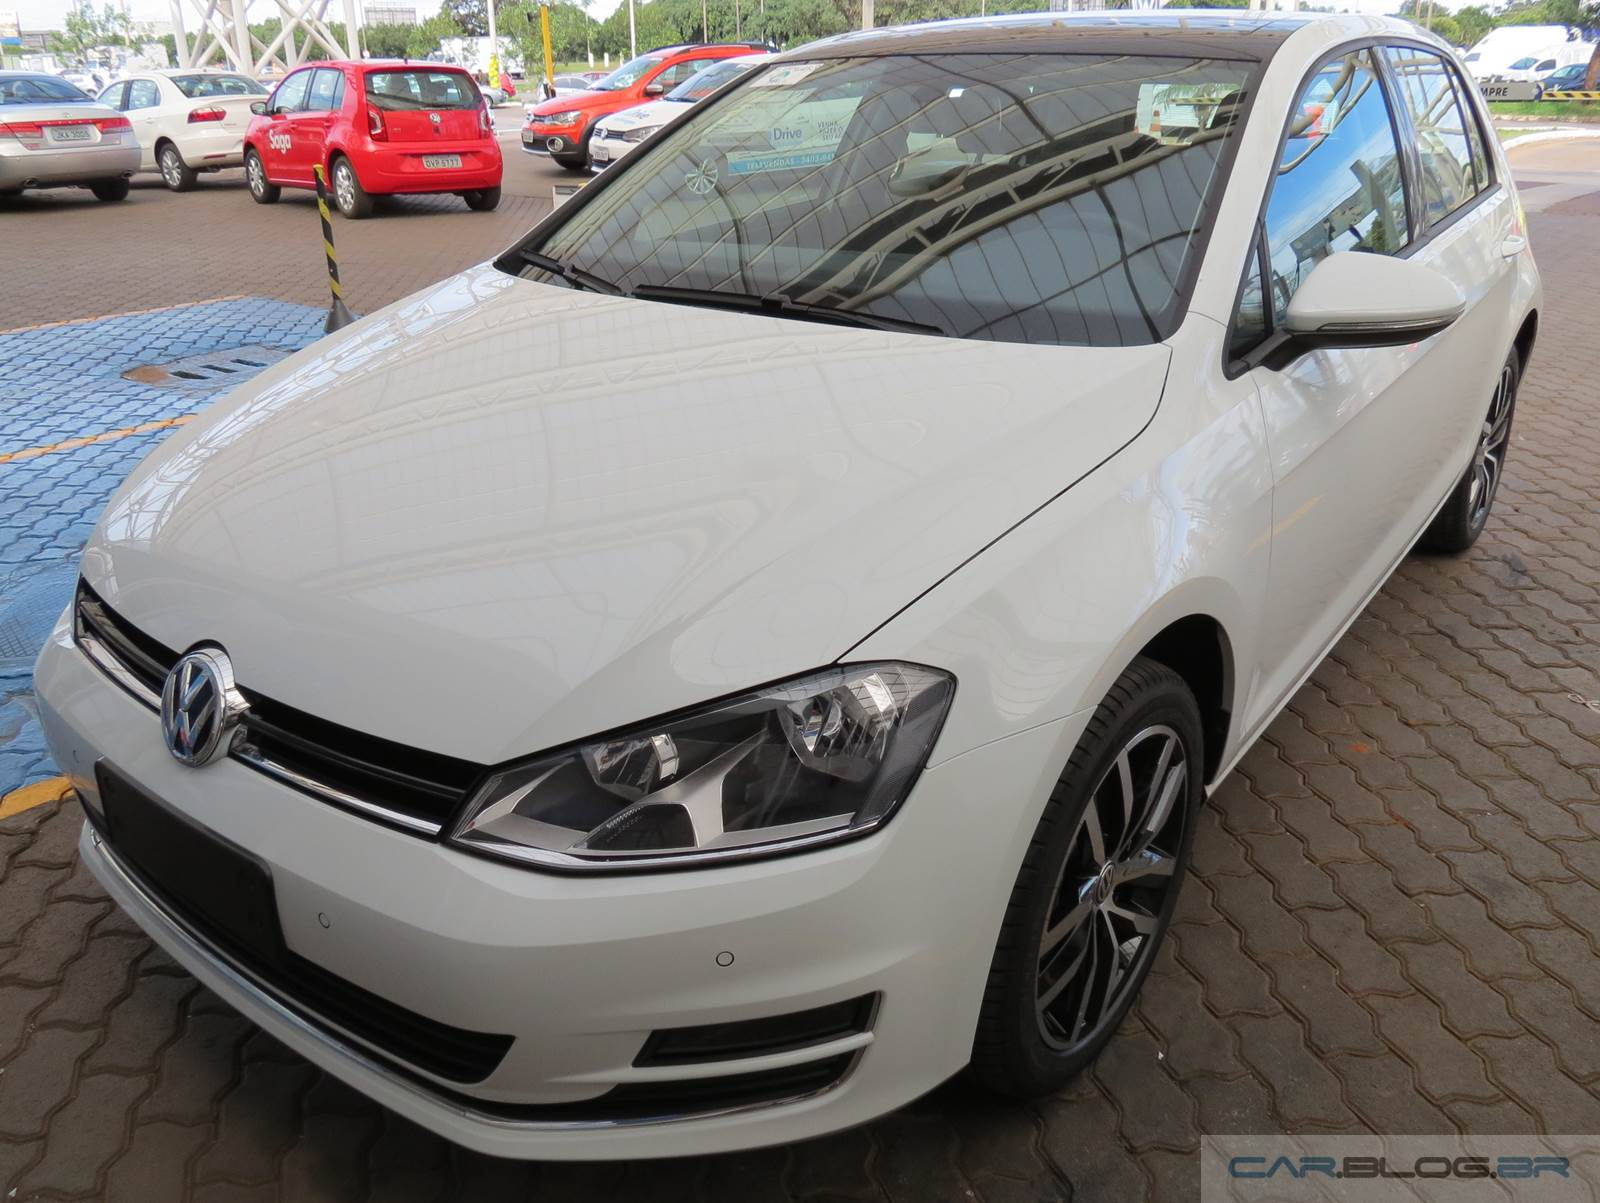 vw golf tsi pre o subiu mais de r 14 mil em 18 meses car blog br. Black Bedroom Furniture Sets. Home Design Ideas